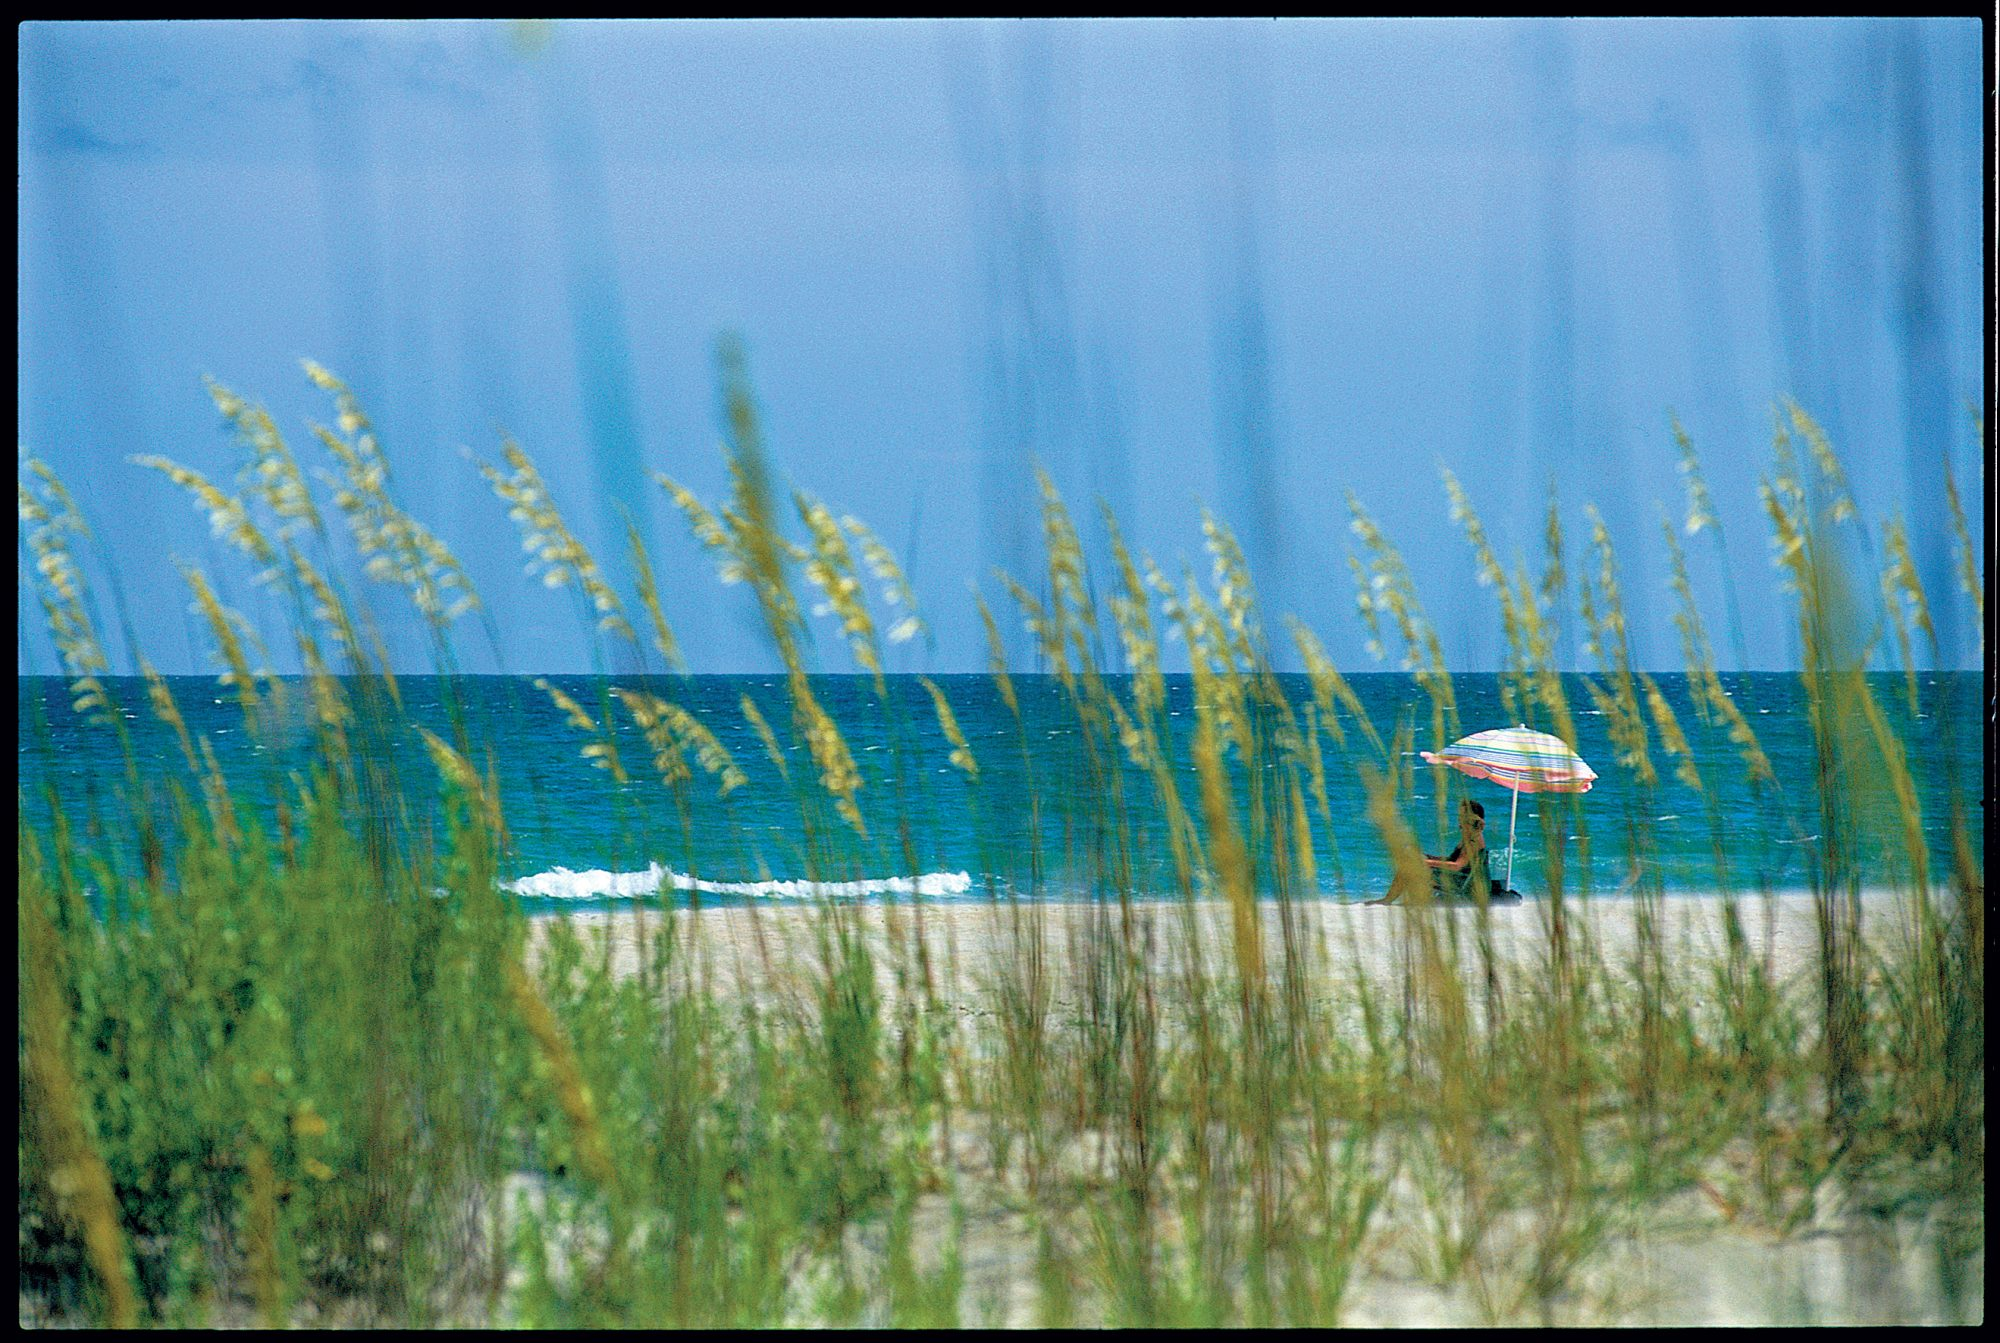 Discover Cape Lookout (promo image)